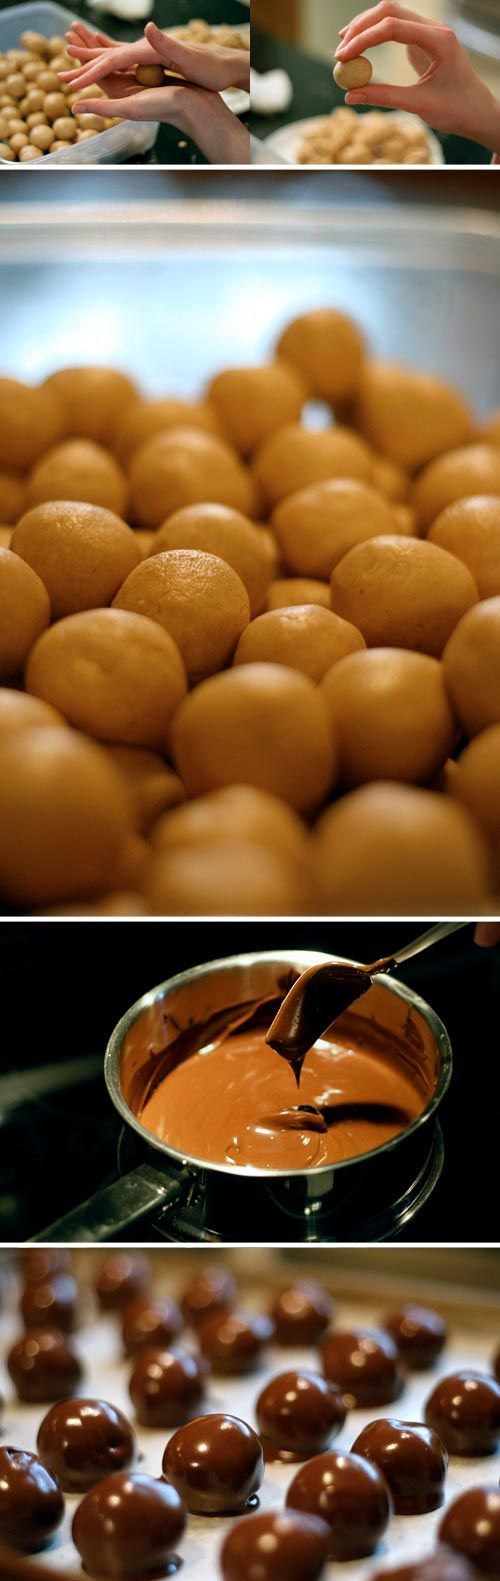 Peanut Butter Balls http://sulia.com/my_thoughts/bc184430-4885-48cc-9c78-f4a58df40635/?source=pin&action=share&btn=small&form_factor=desktop&pinner=125502693